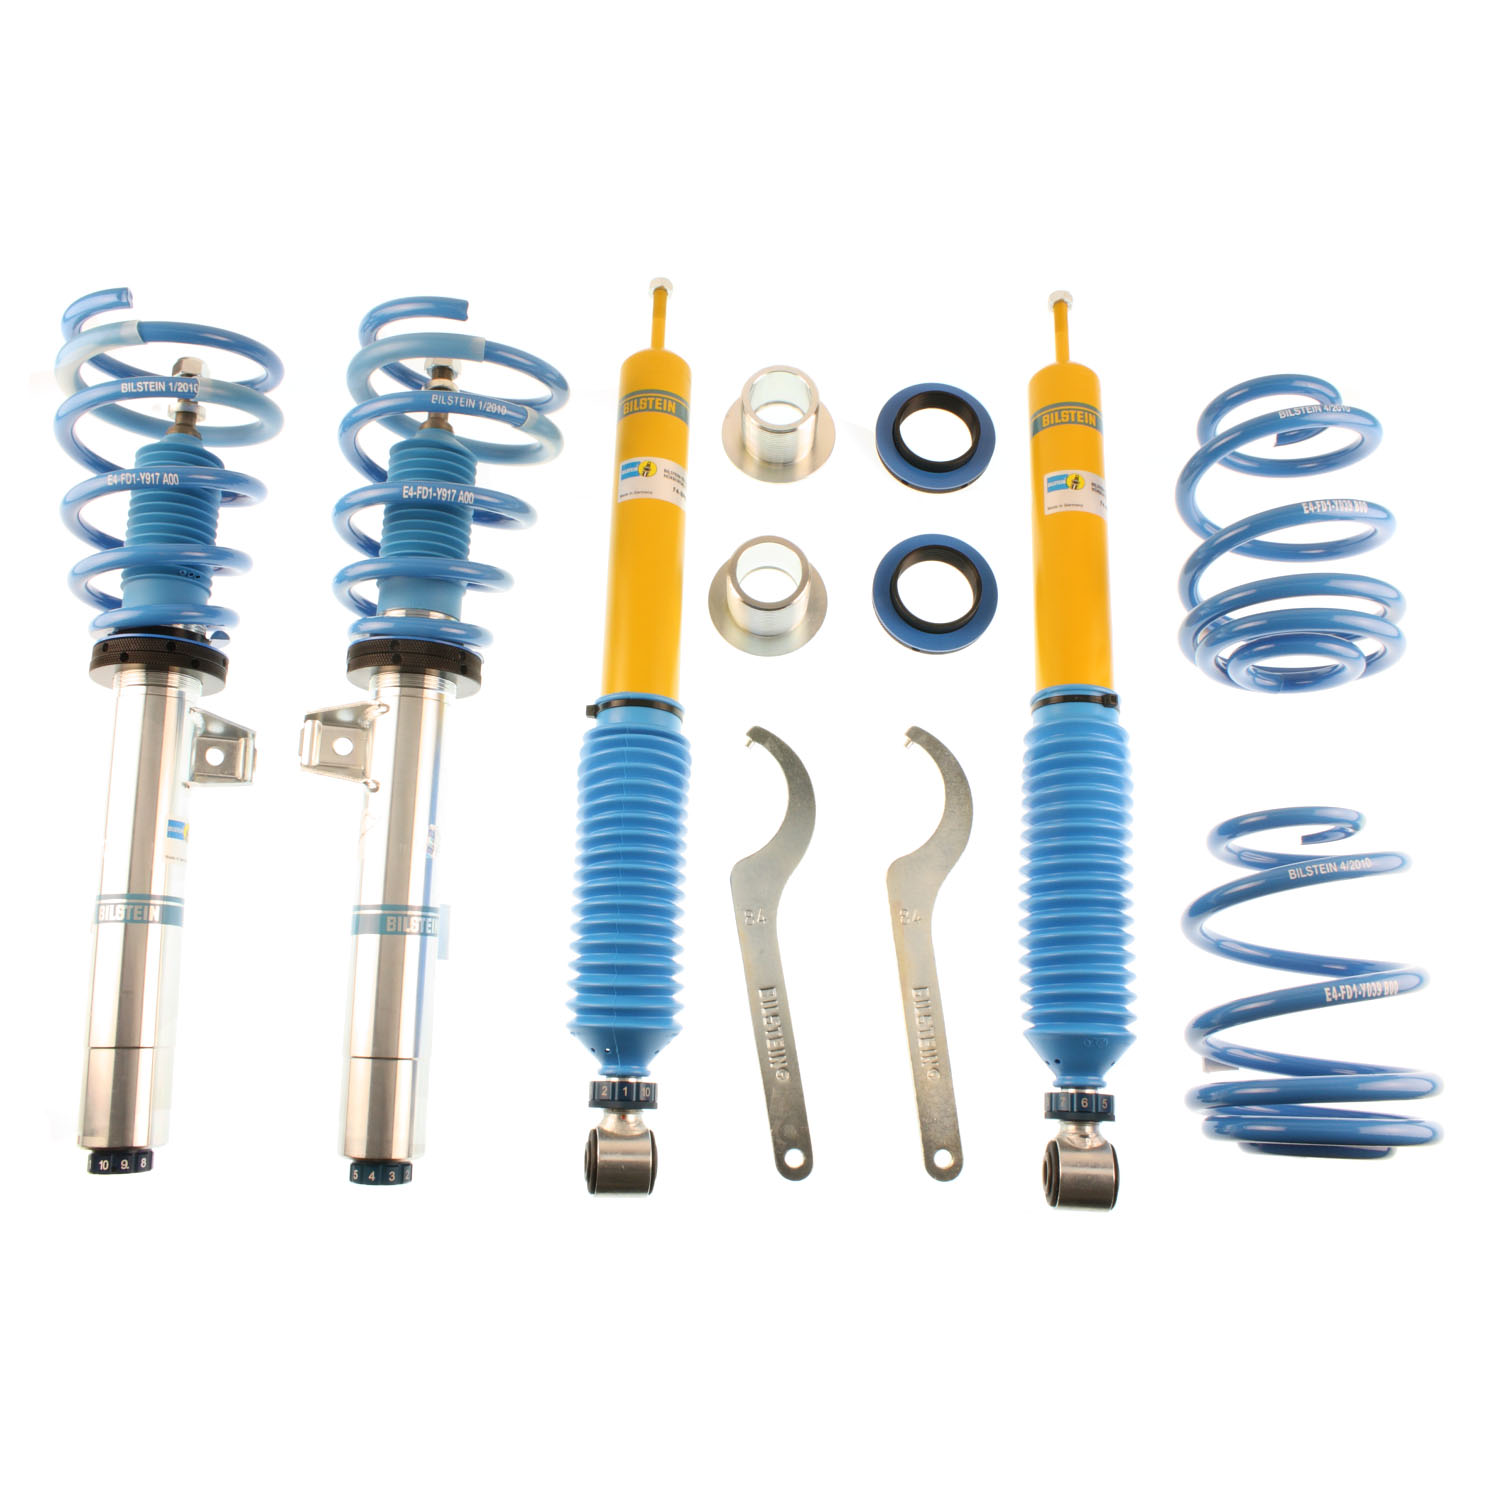 Bilstein (PSS10) Performance Suspension System for BMW Z4 (E89)